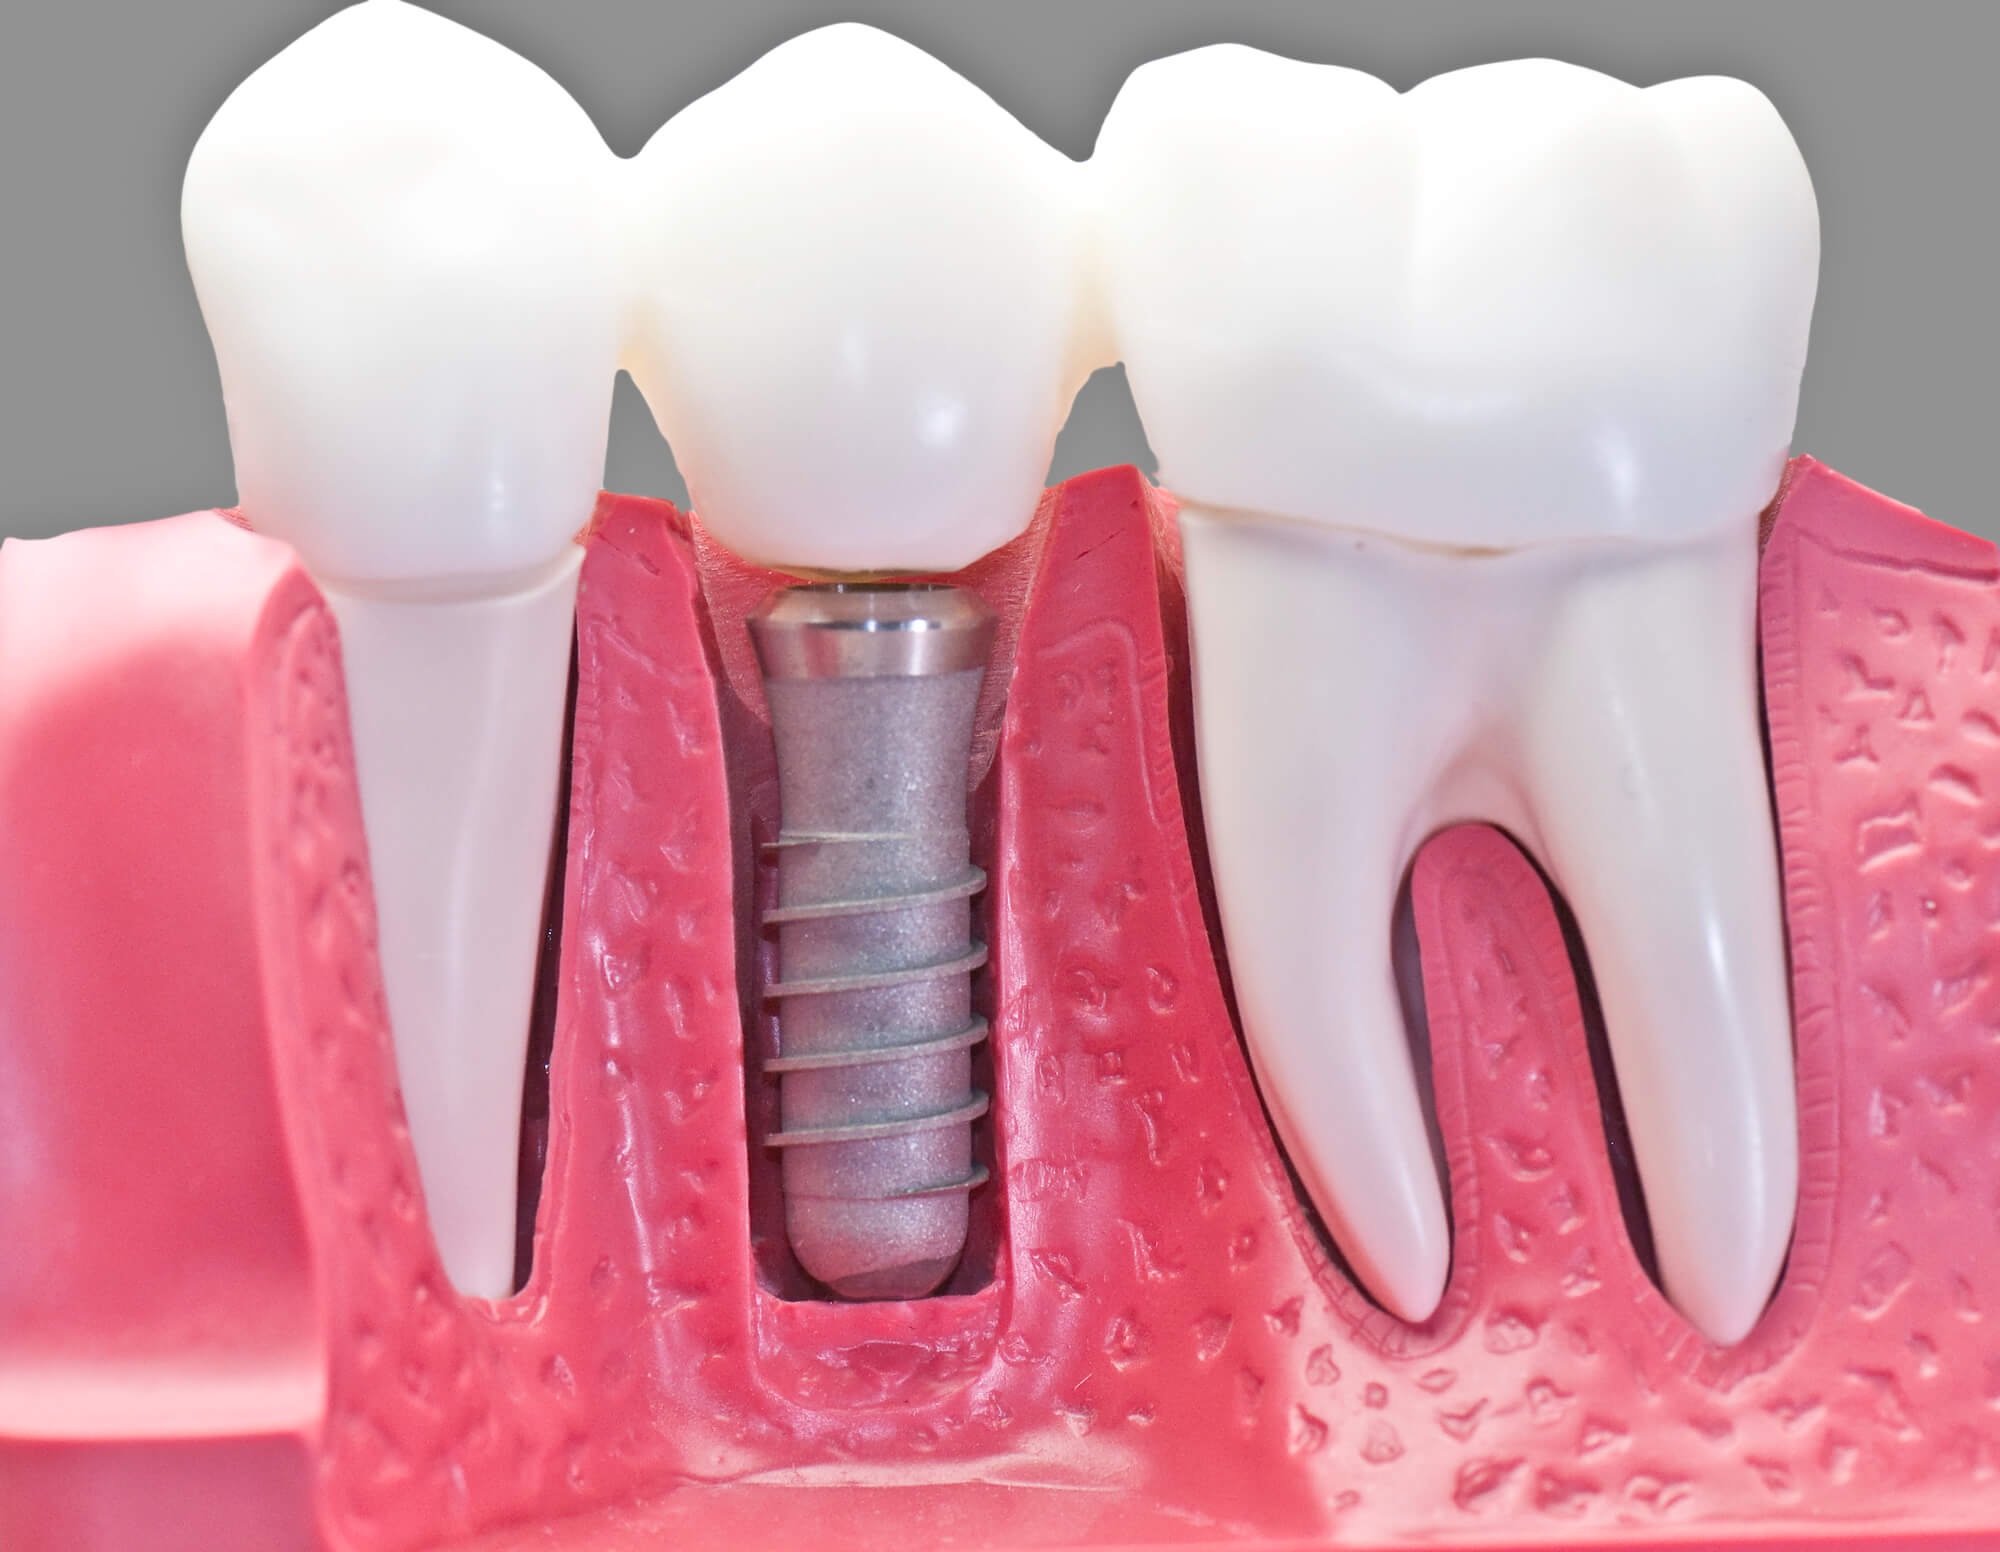 Where to get dental implants boynton beach restorative care?